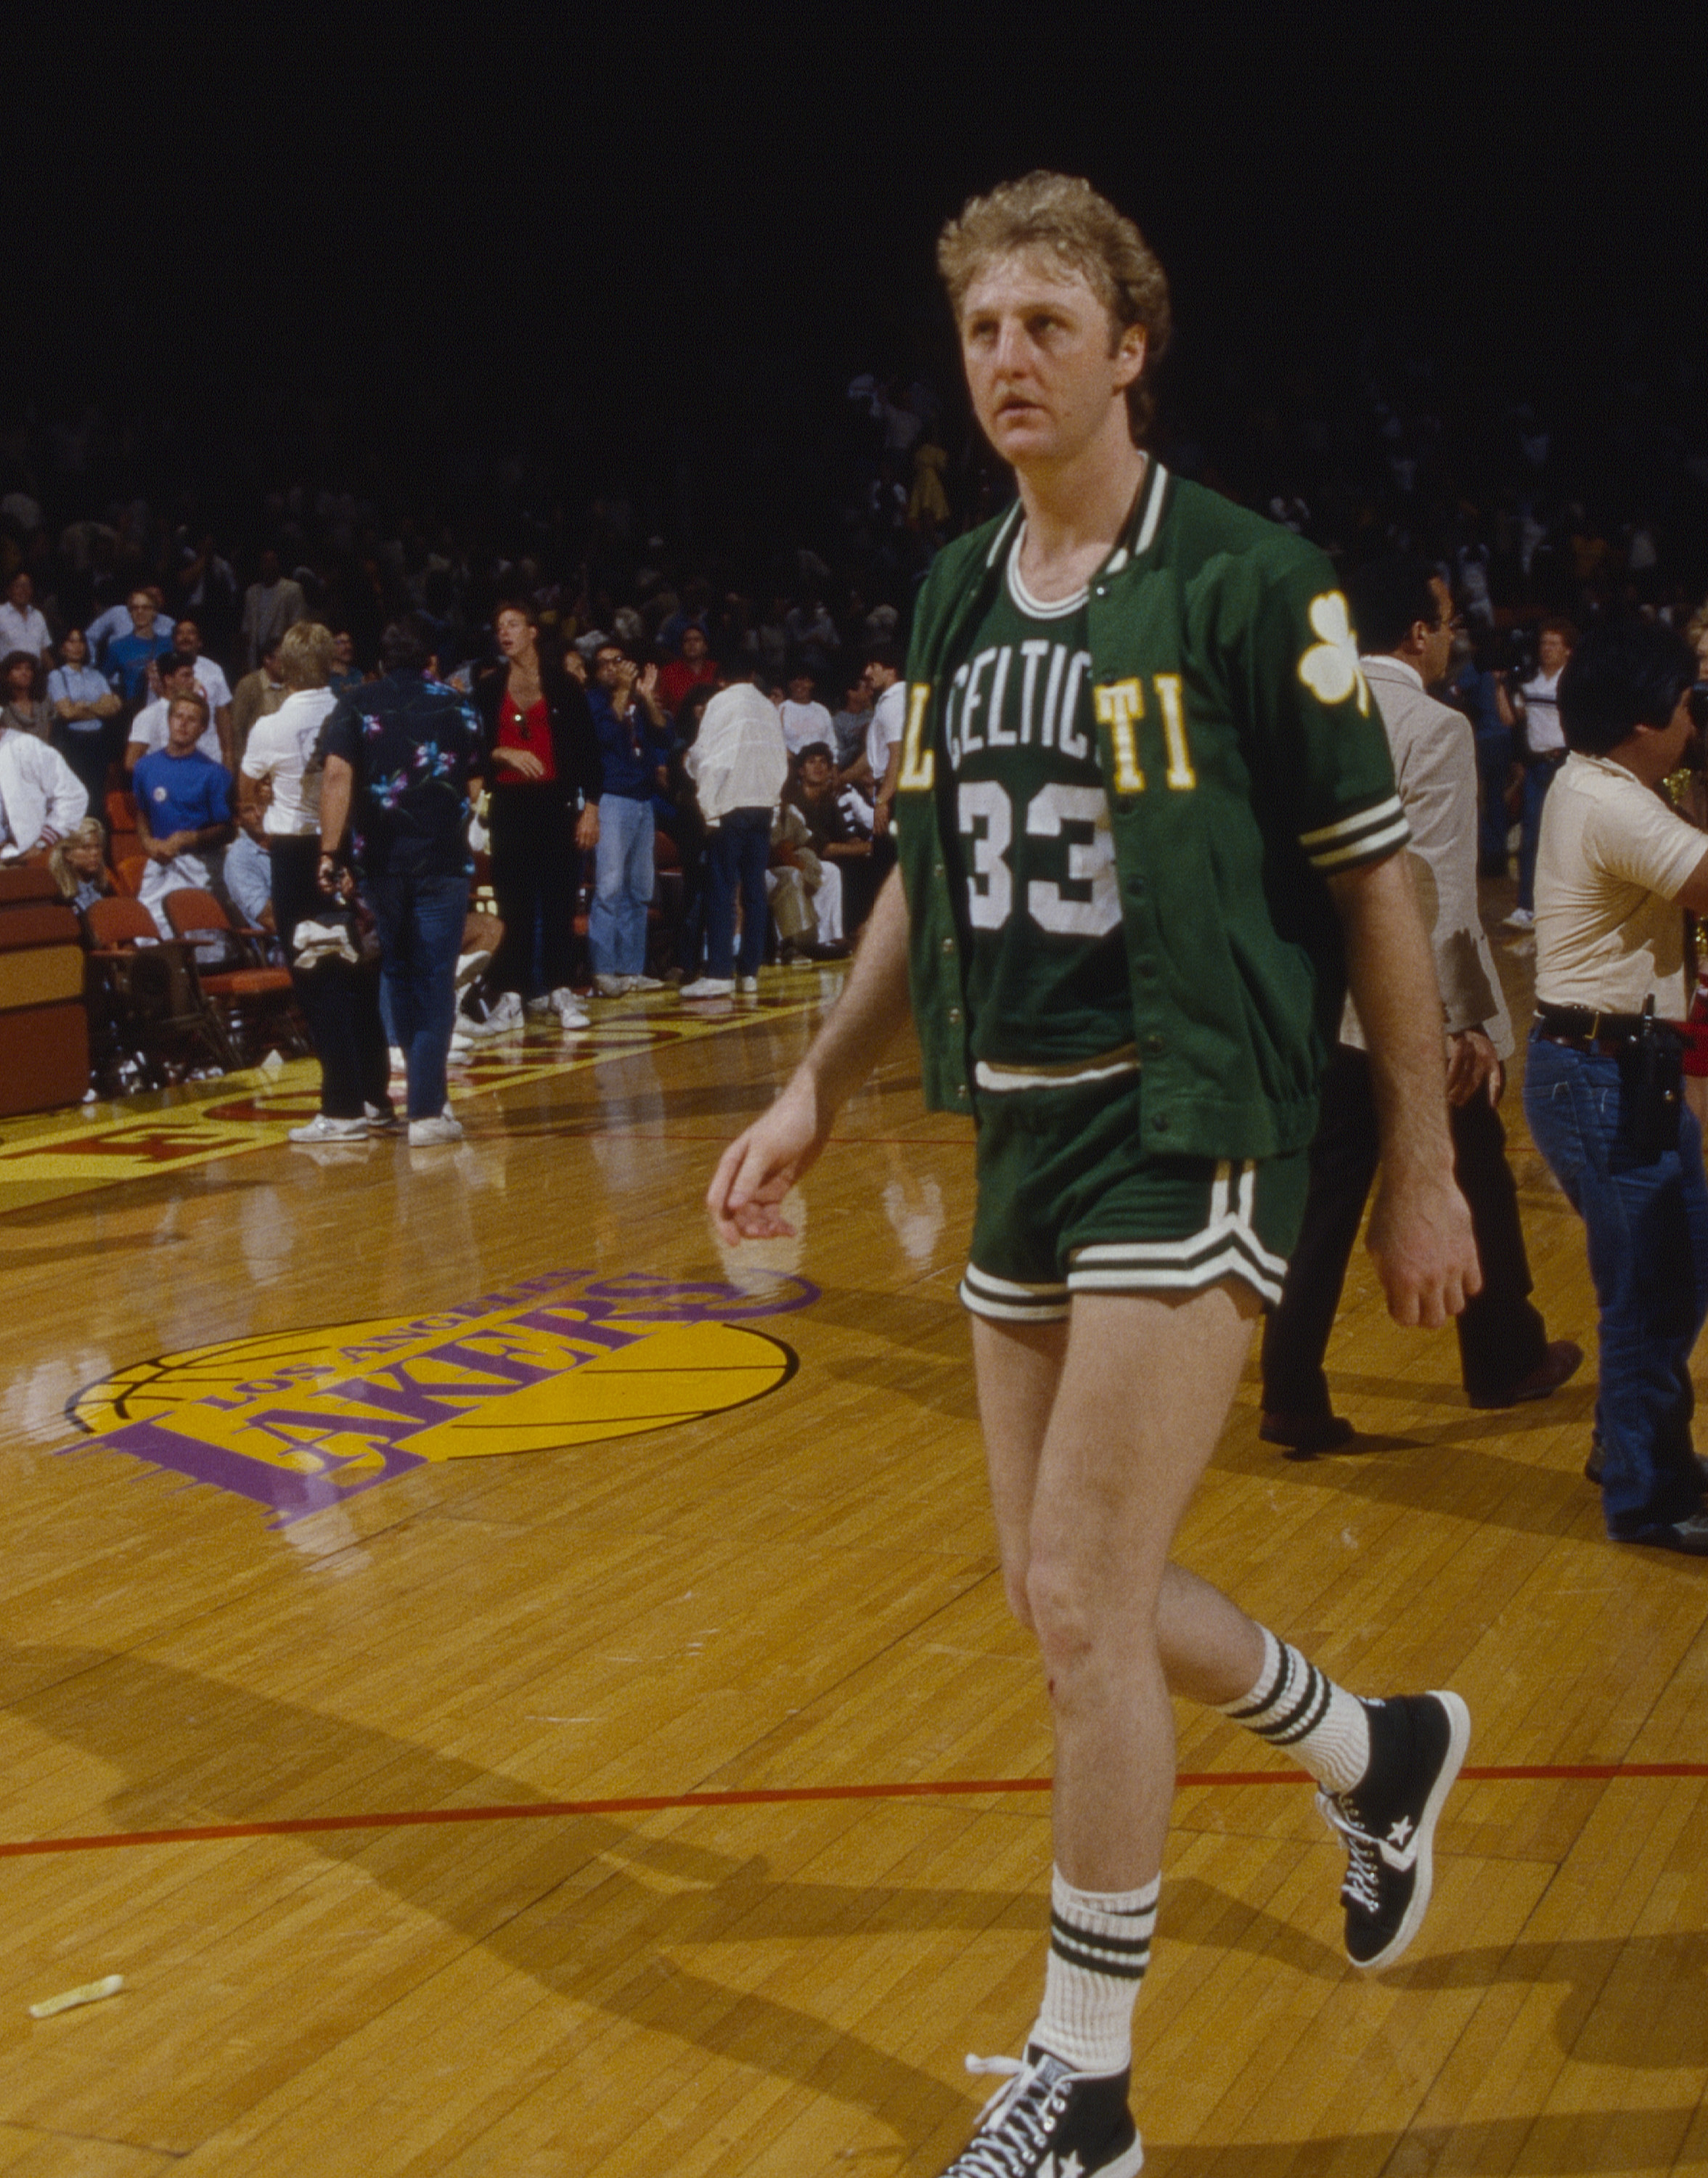 Larry Bird, the Celtics' No. 33, on the basketball court against the Los Angeles Lakers